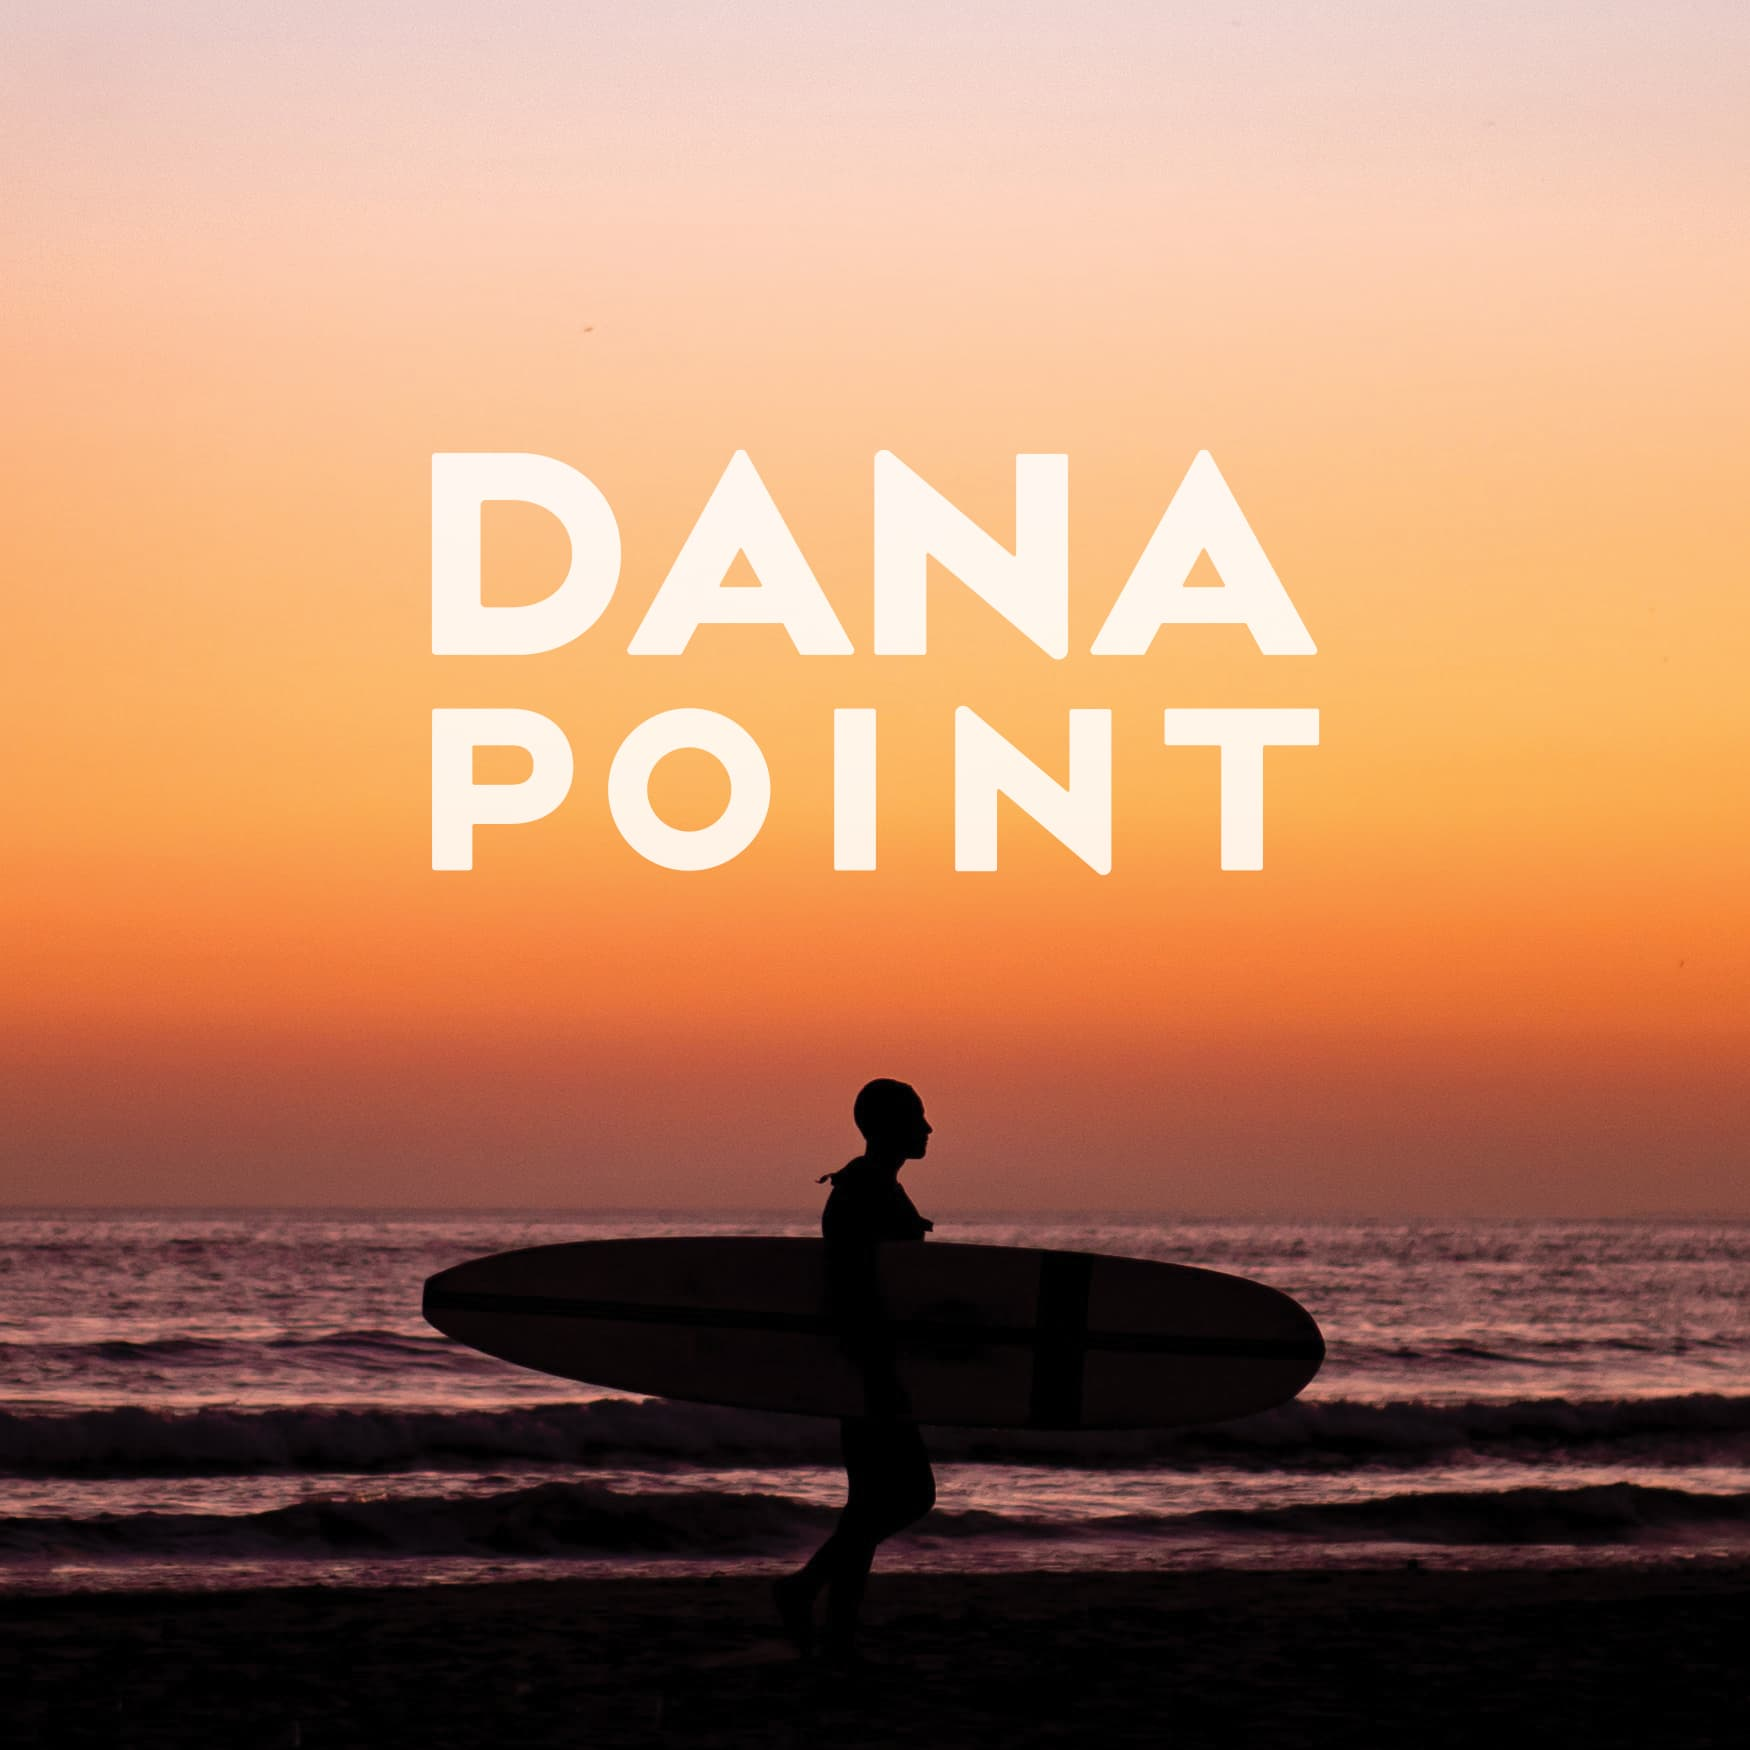 Shadow of a surfer at sunset with the words DANA POINT written above him.